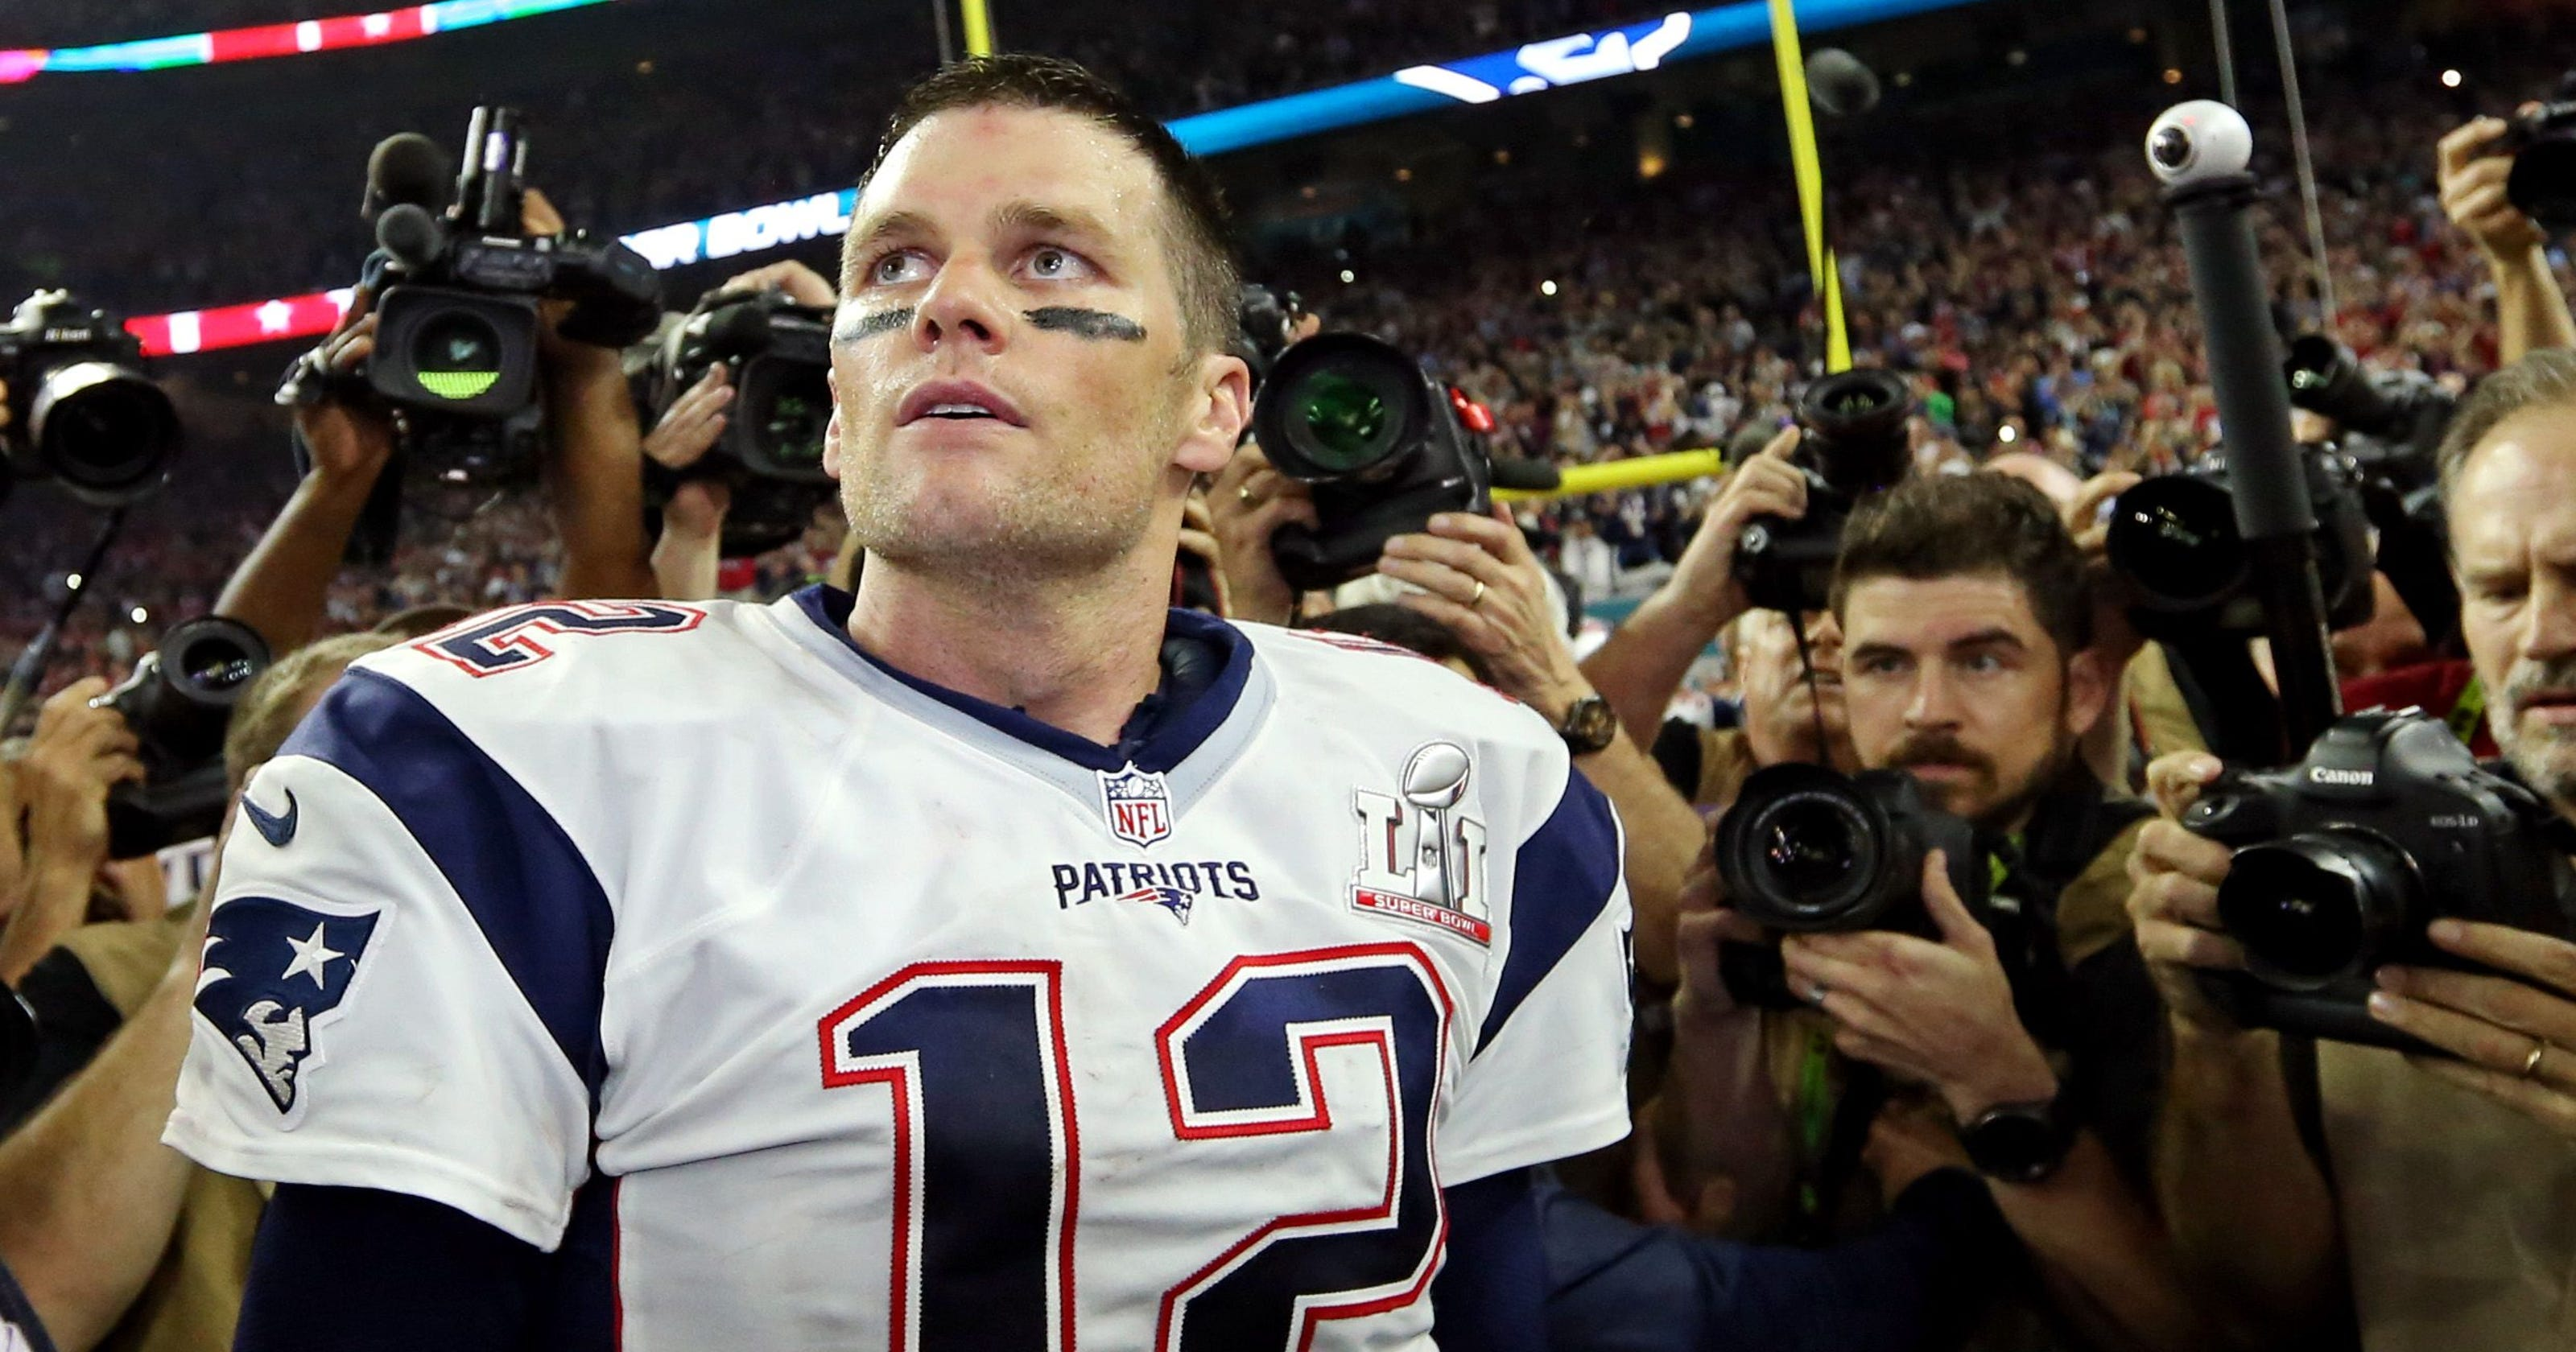 tom brady jersey theft charges